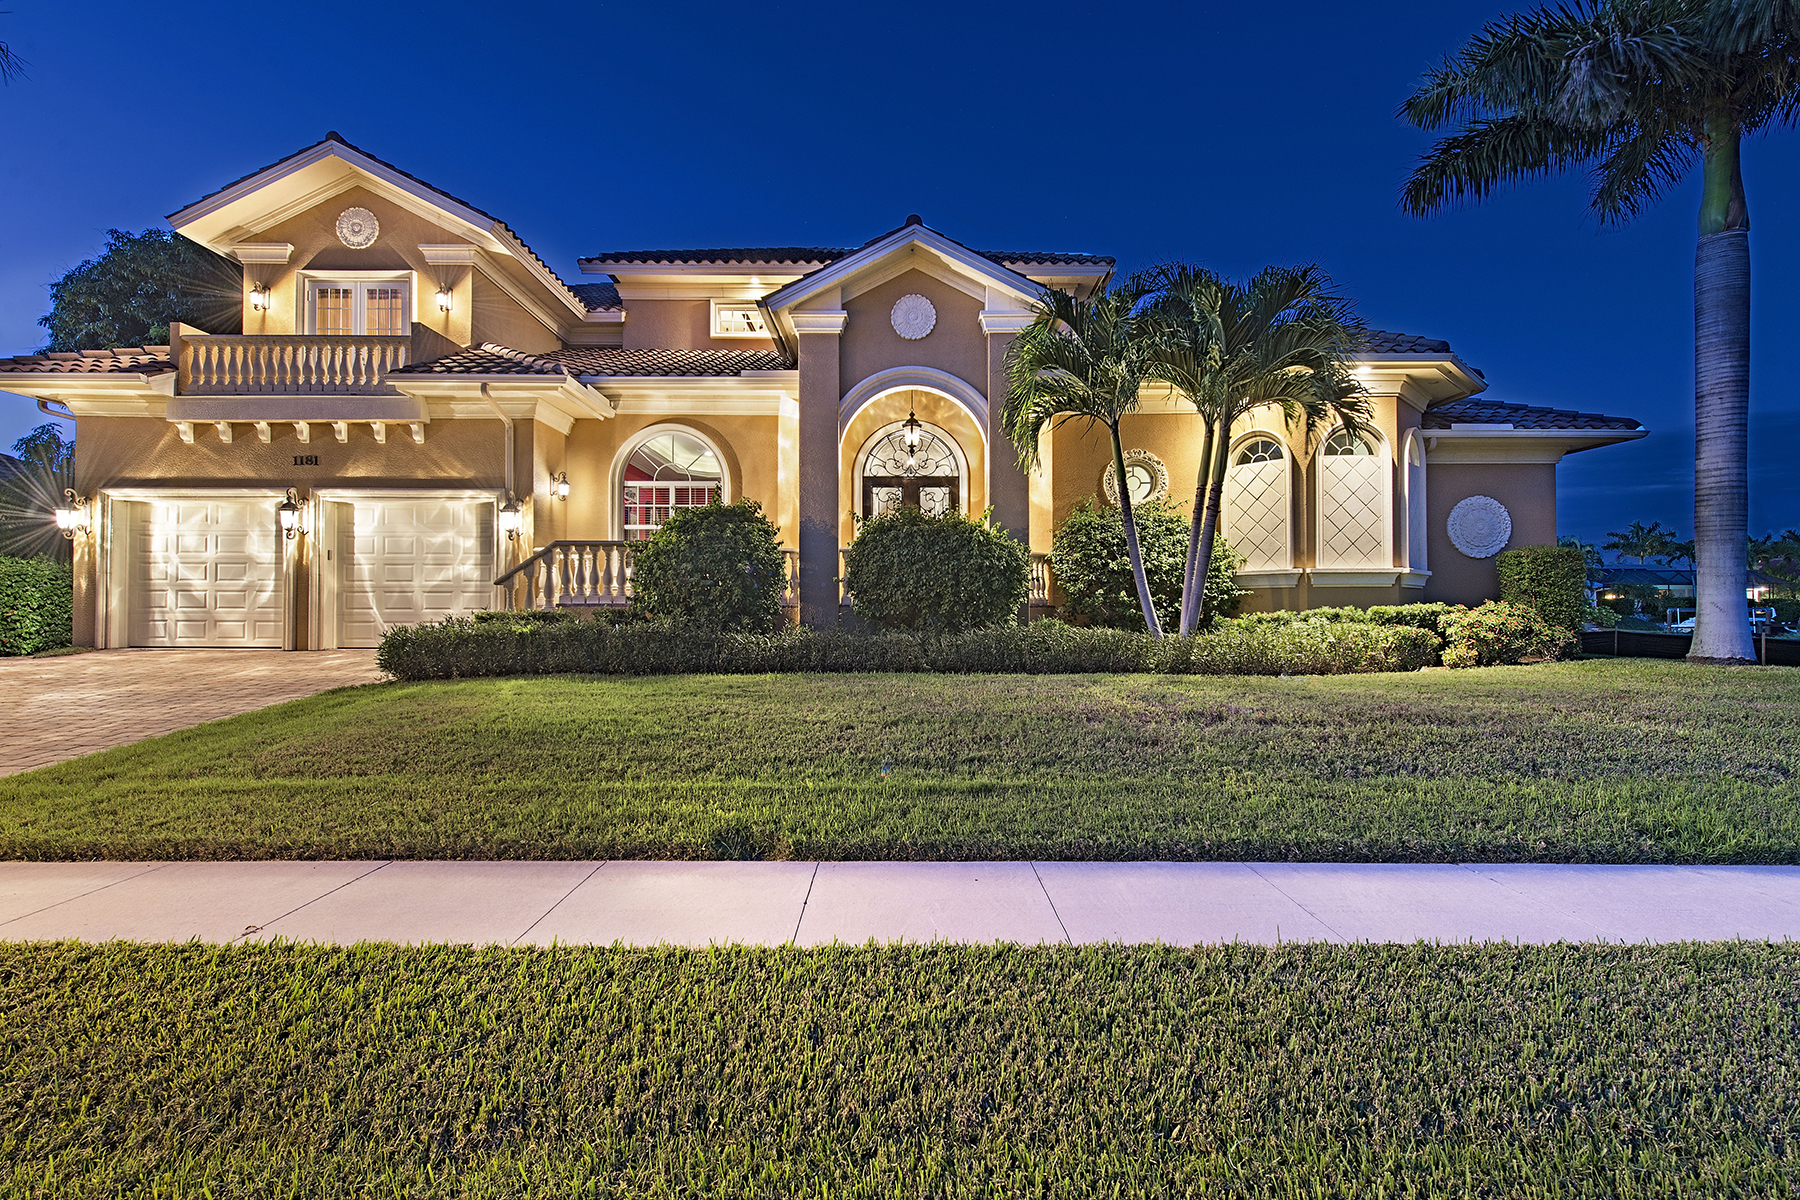 Single Family Home for Sale at MARCO ISLAND - OSPREY CT. 1181 Osprey Ct Marco Island, Florida, 34145 United States